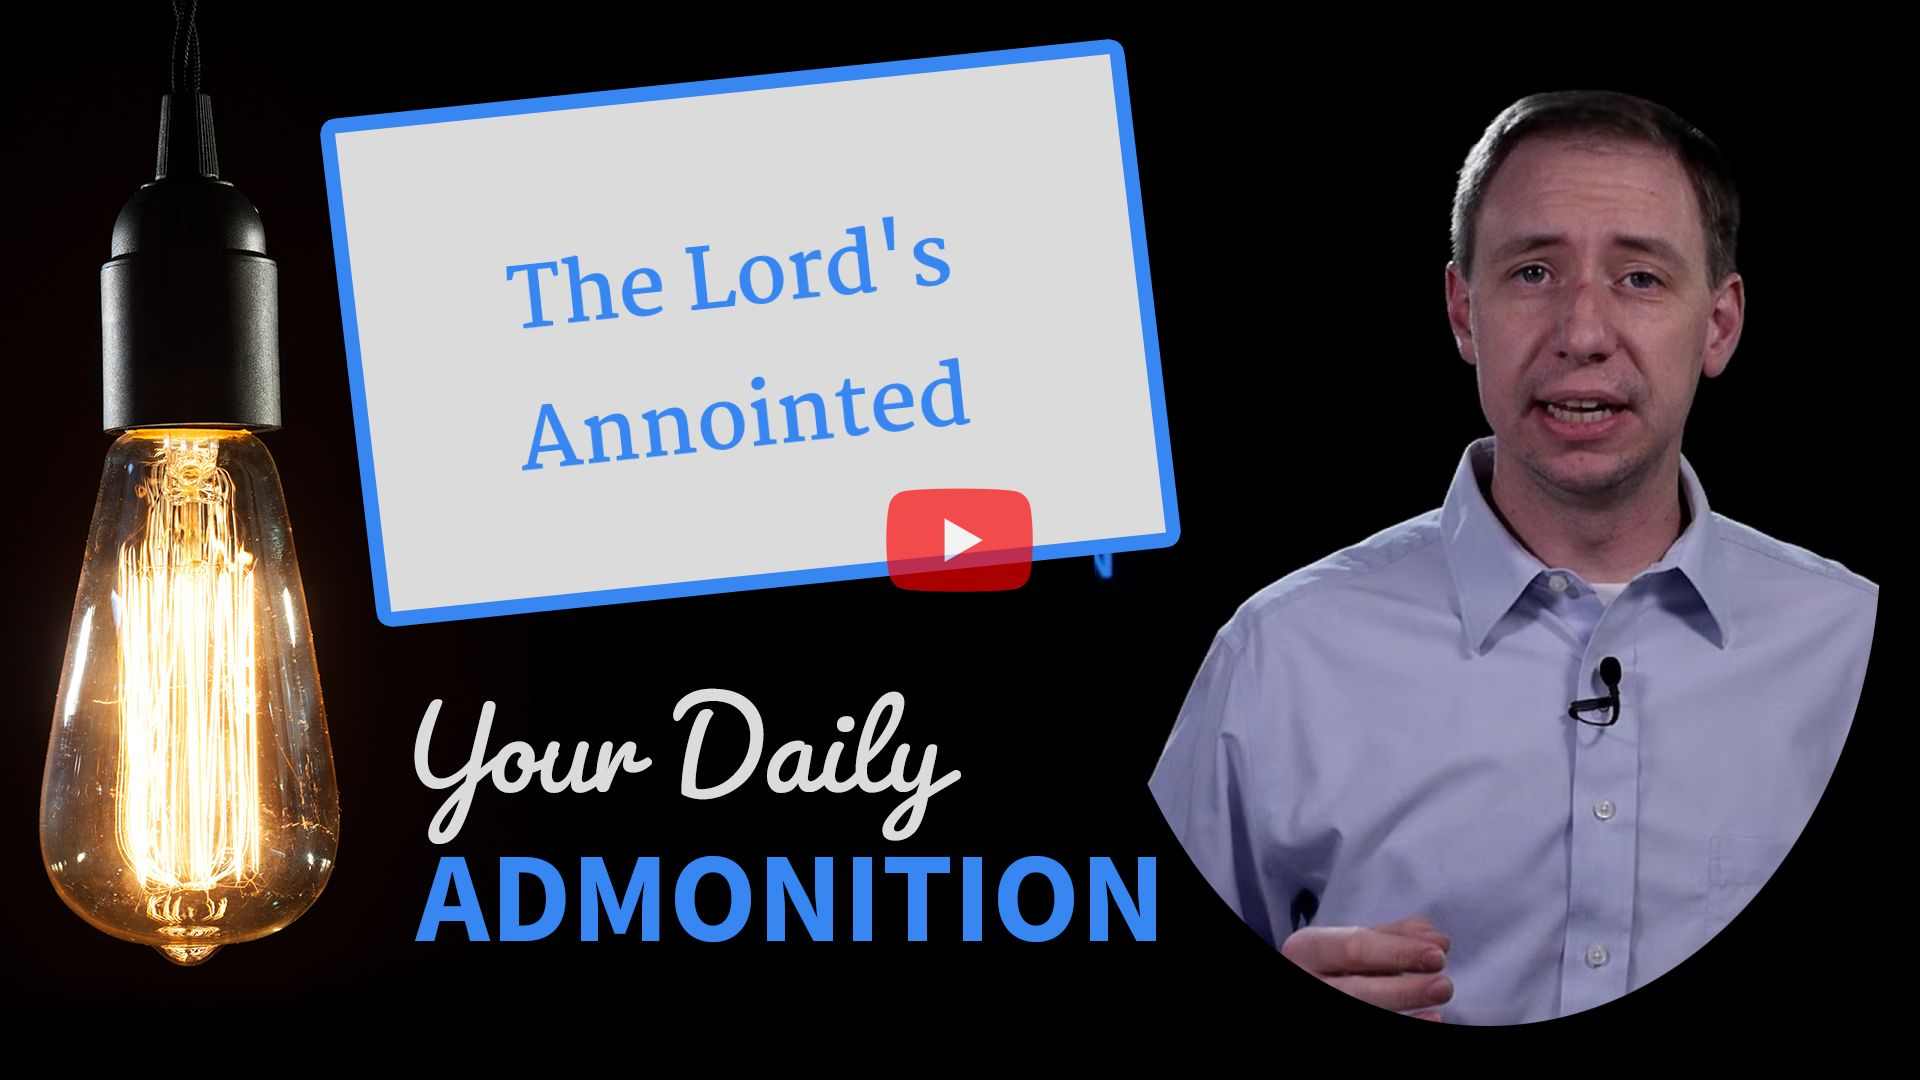 The Lord's Annointed – Admonition 255